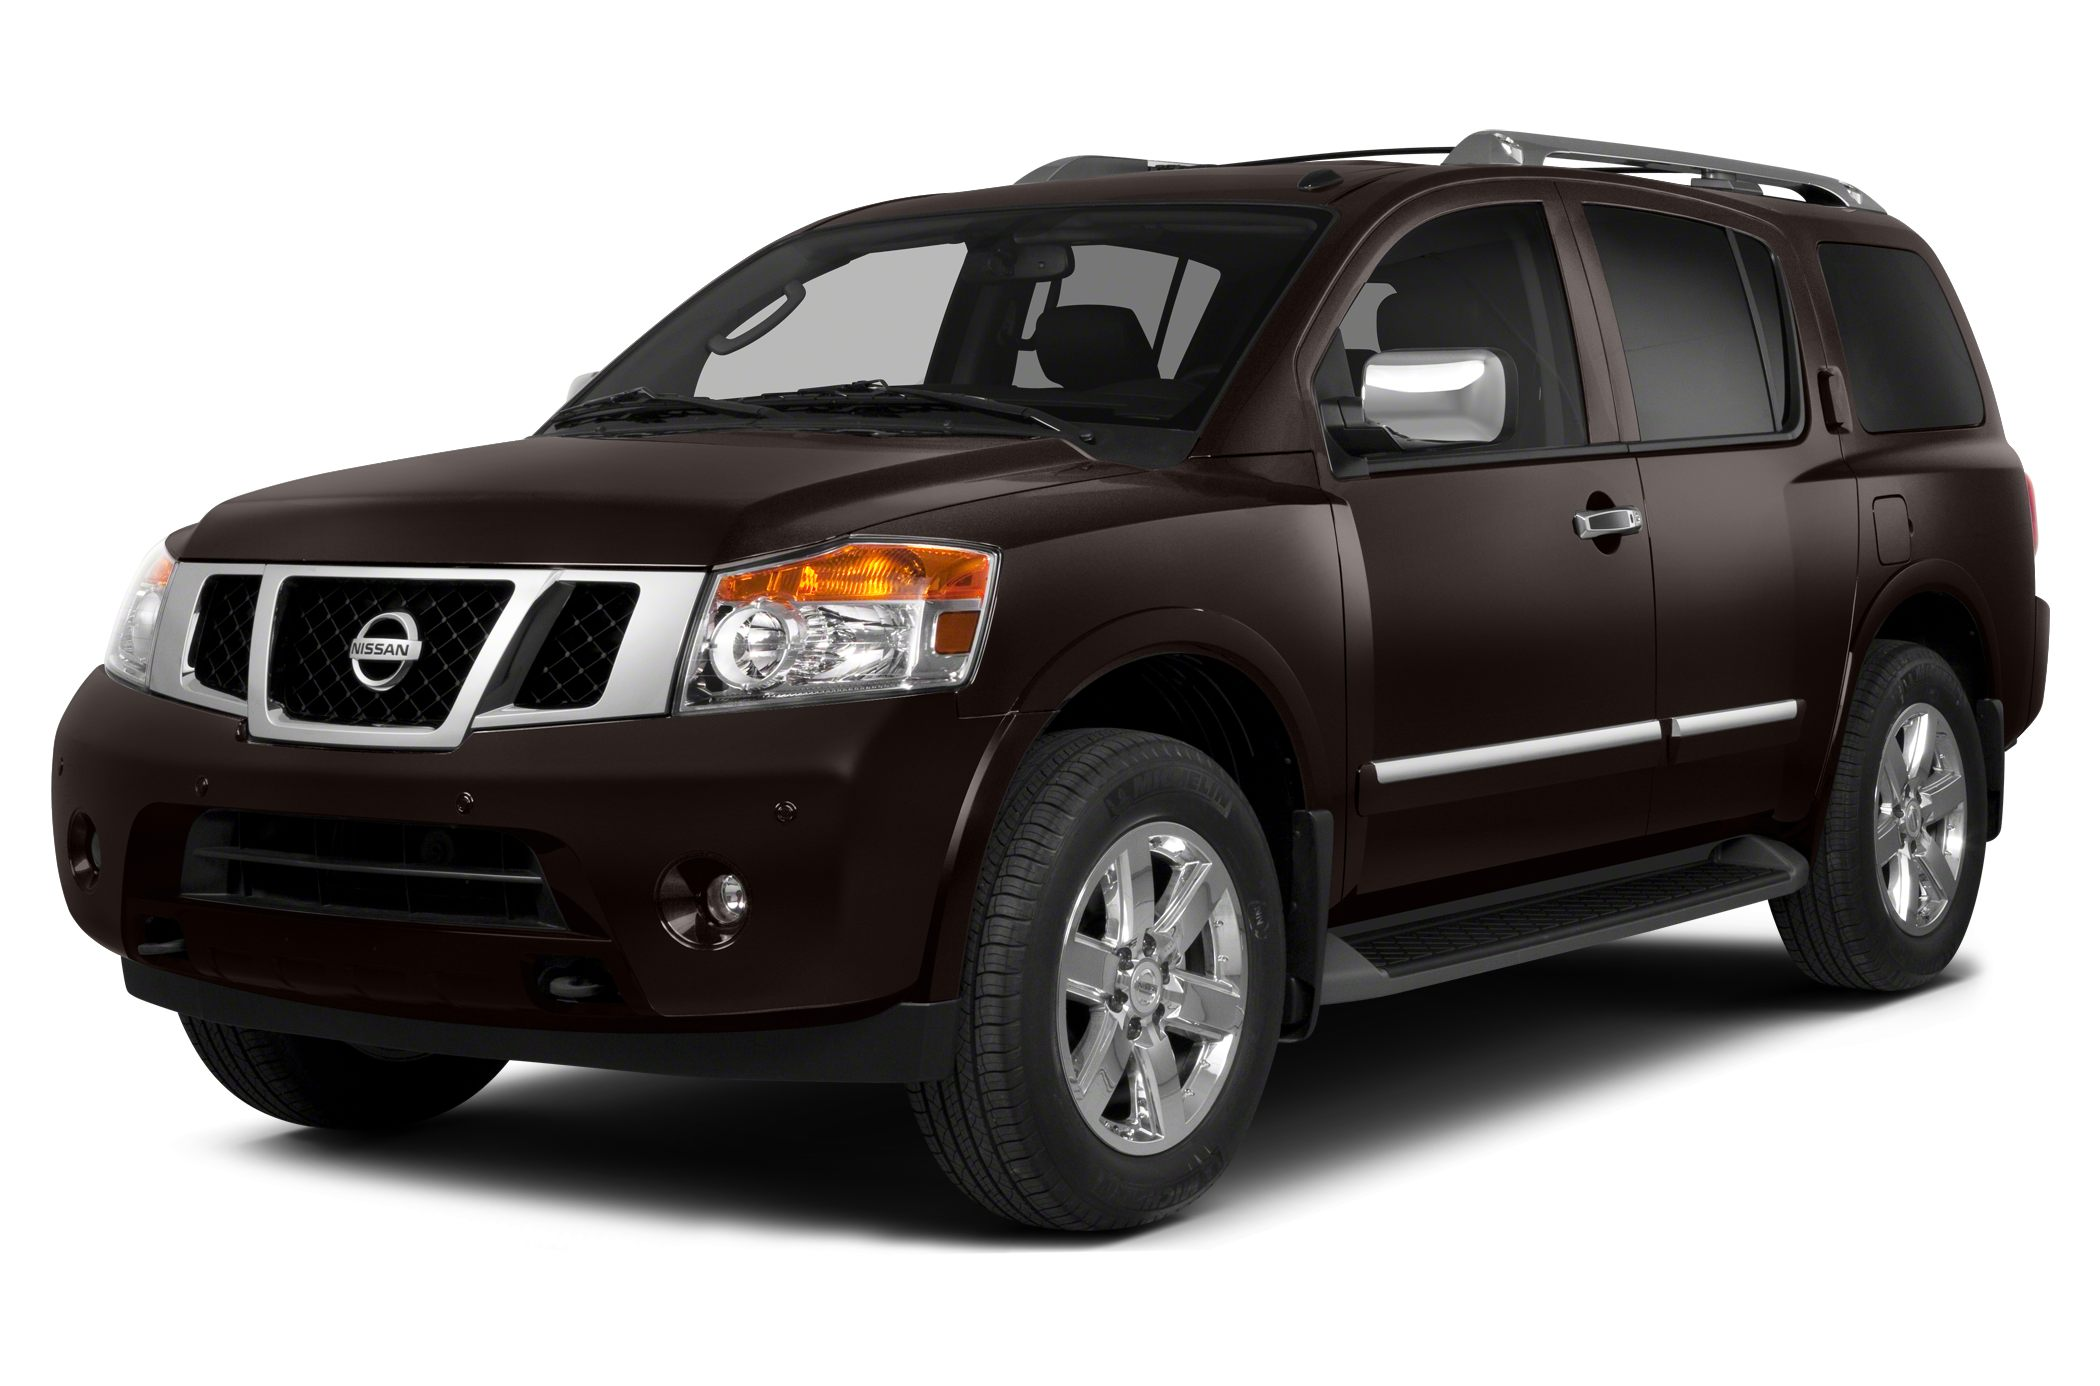 2013 Nissan Armada SV Certifed by CARFAX - NO ACCIDENTS GREEN TAG SPECIAL 110 PT INSPECTION 6